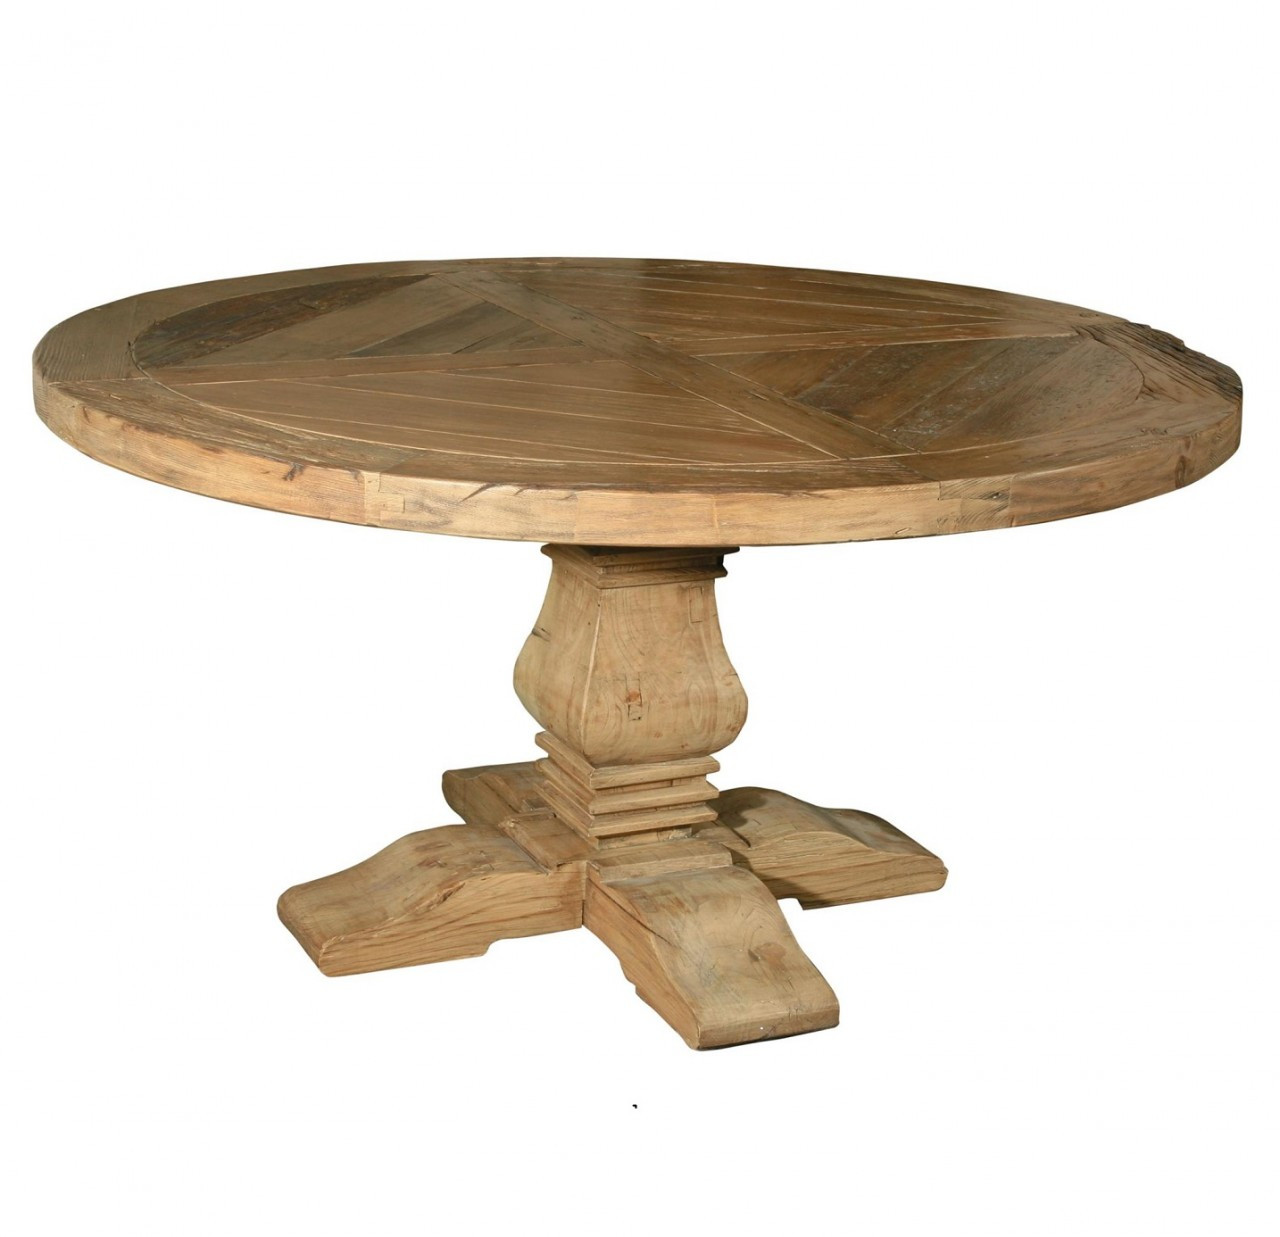 pedestal 60 round dining table reclaimed wood round dining tables zin home. Black Bedroom Furniture Sets. Home Design Ideas